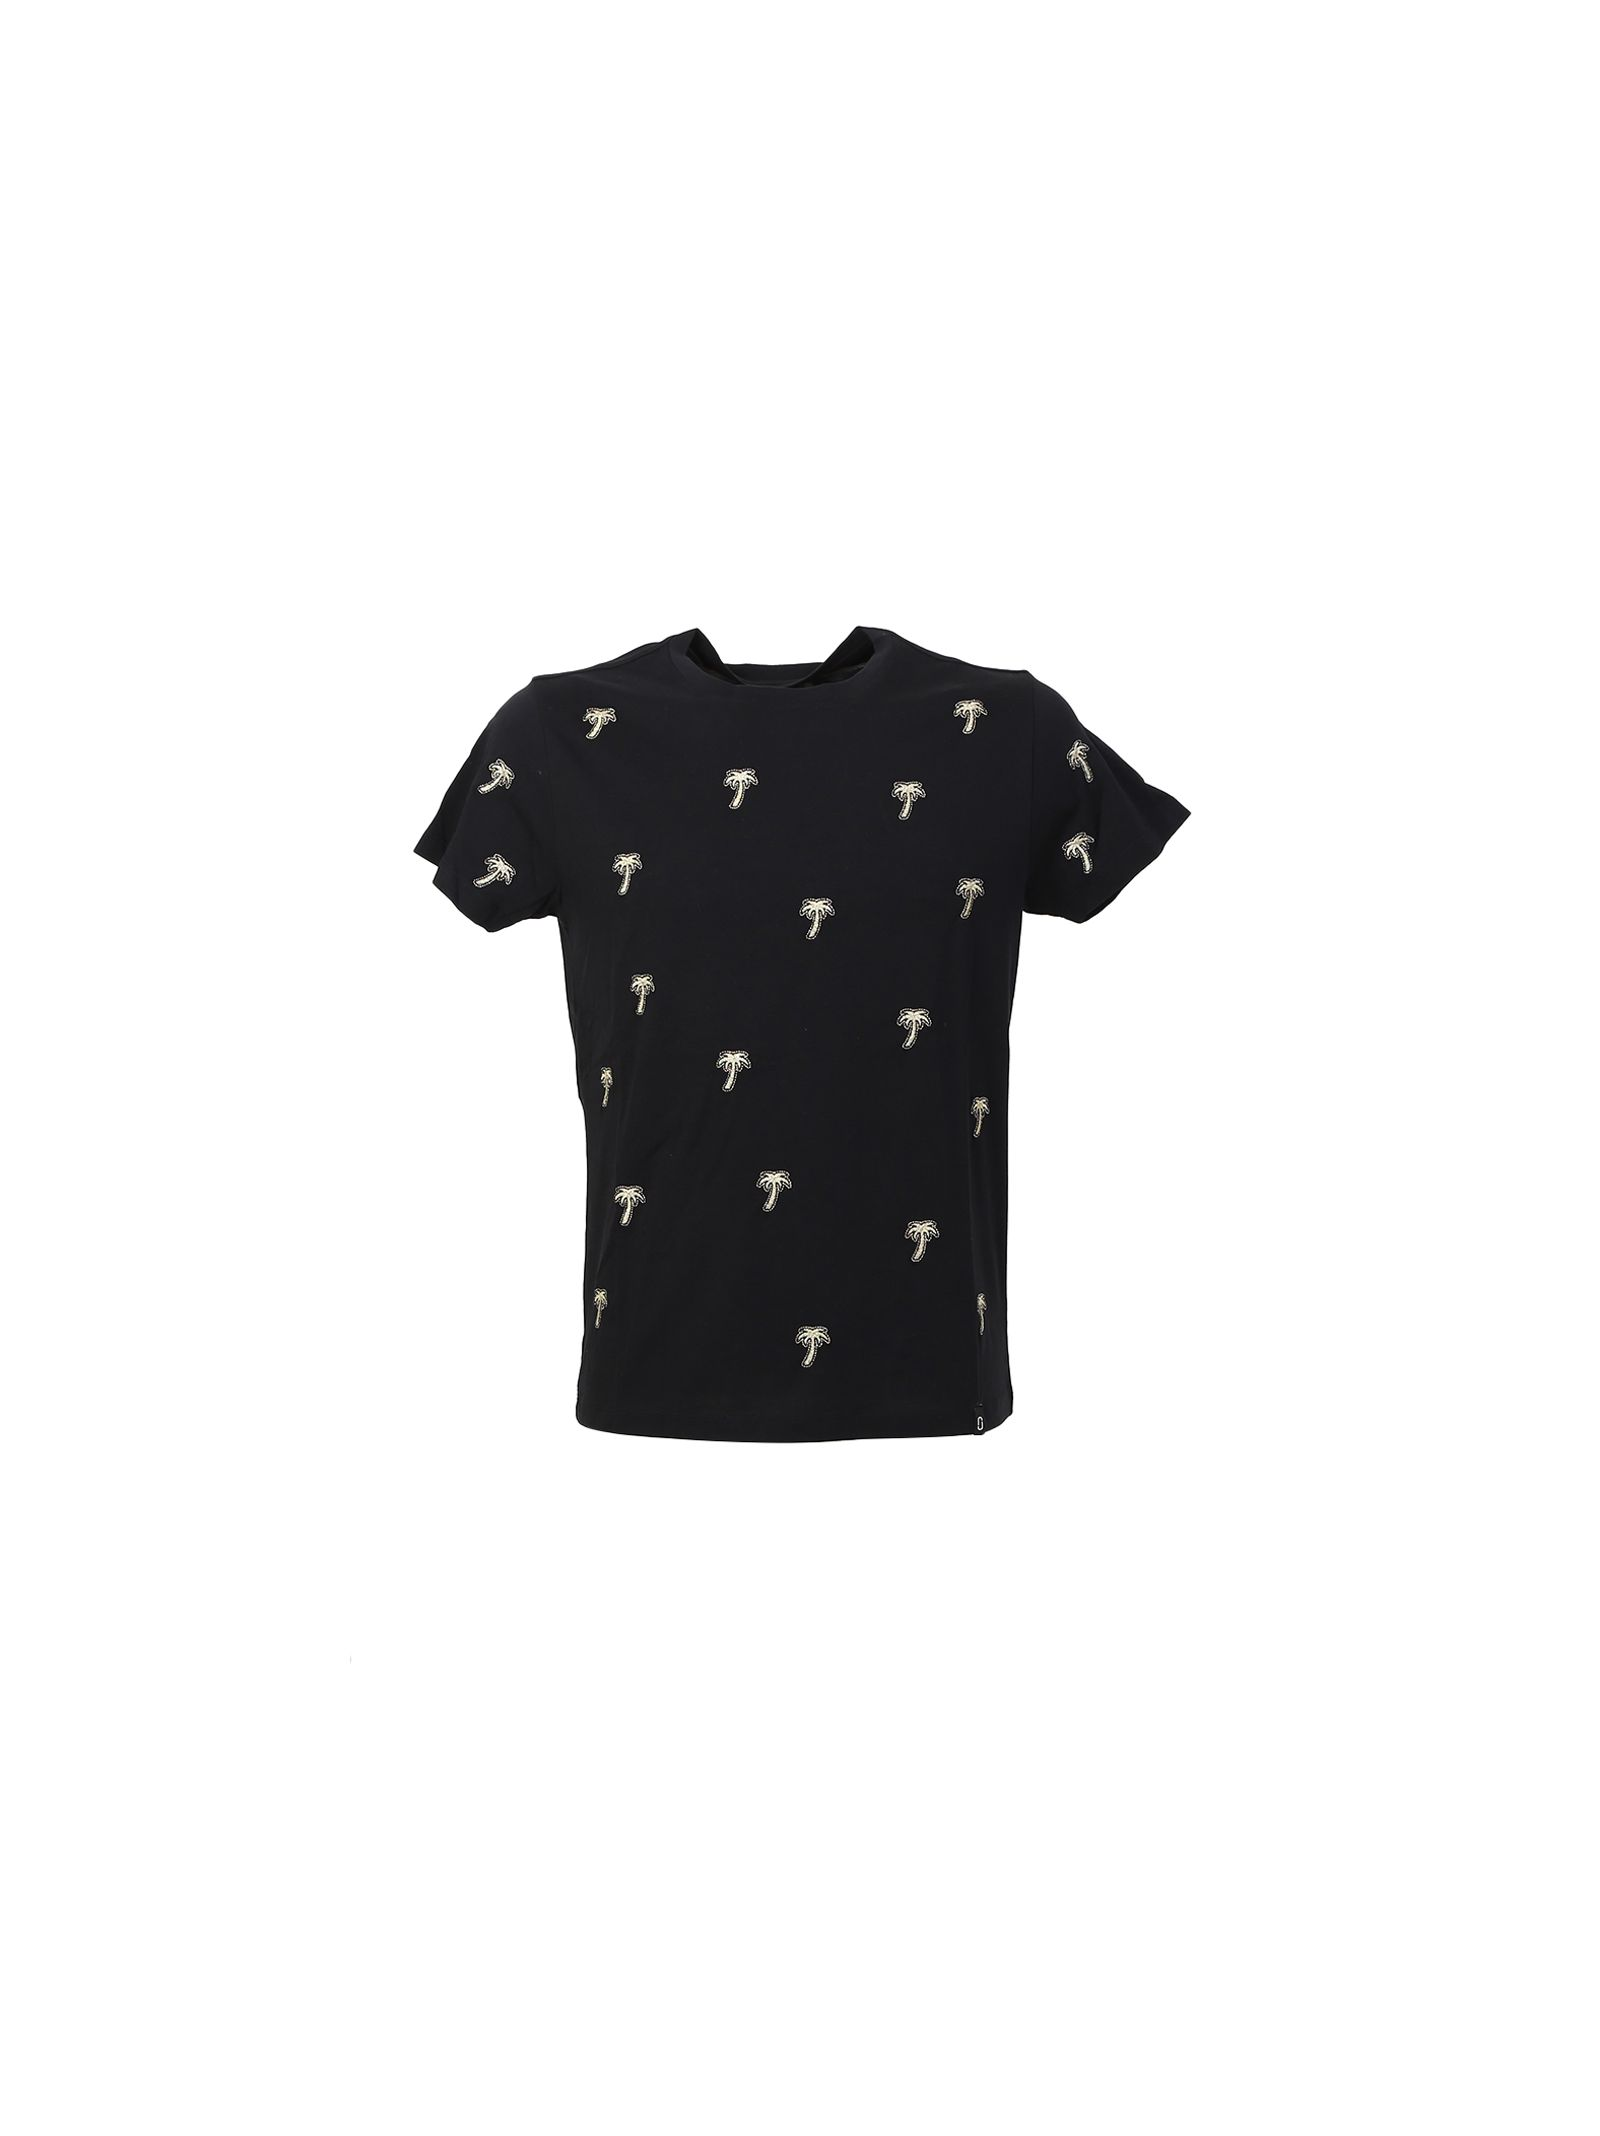 marc jacobs male embroidered black cotton tshirt